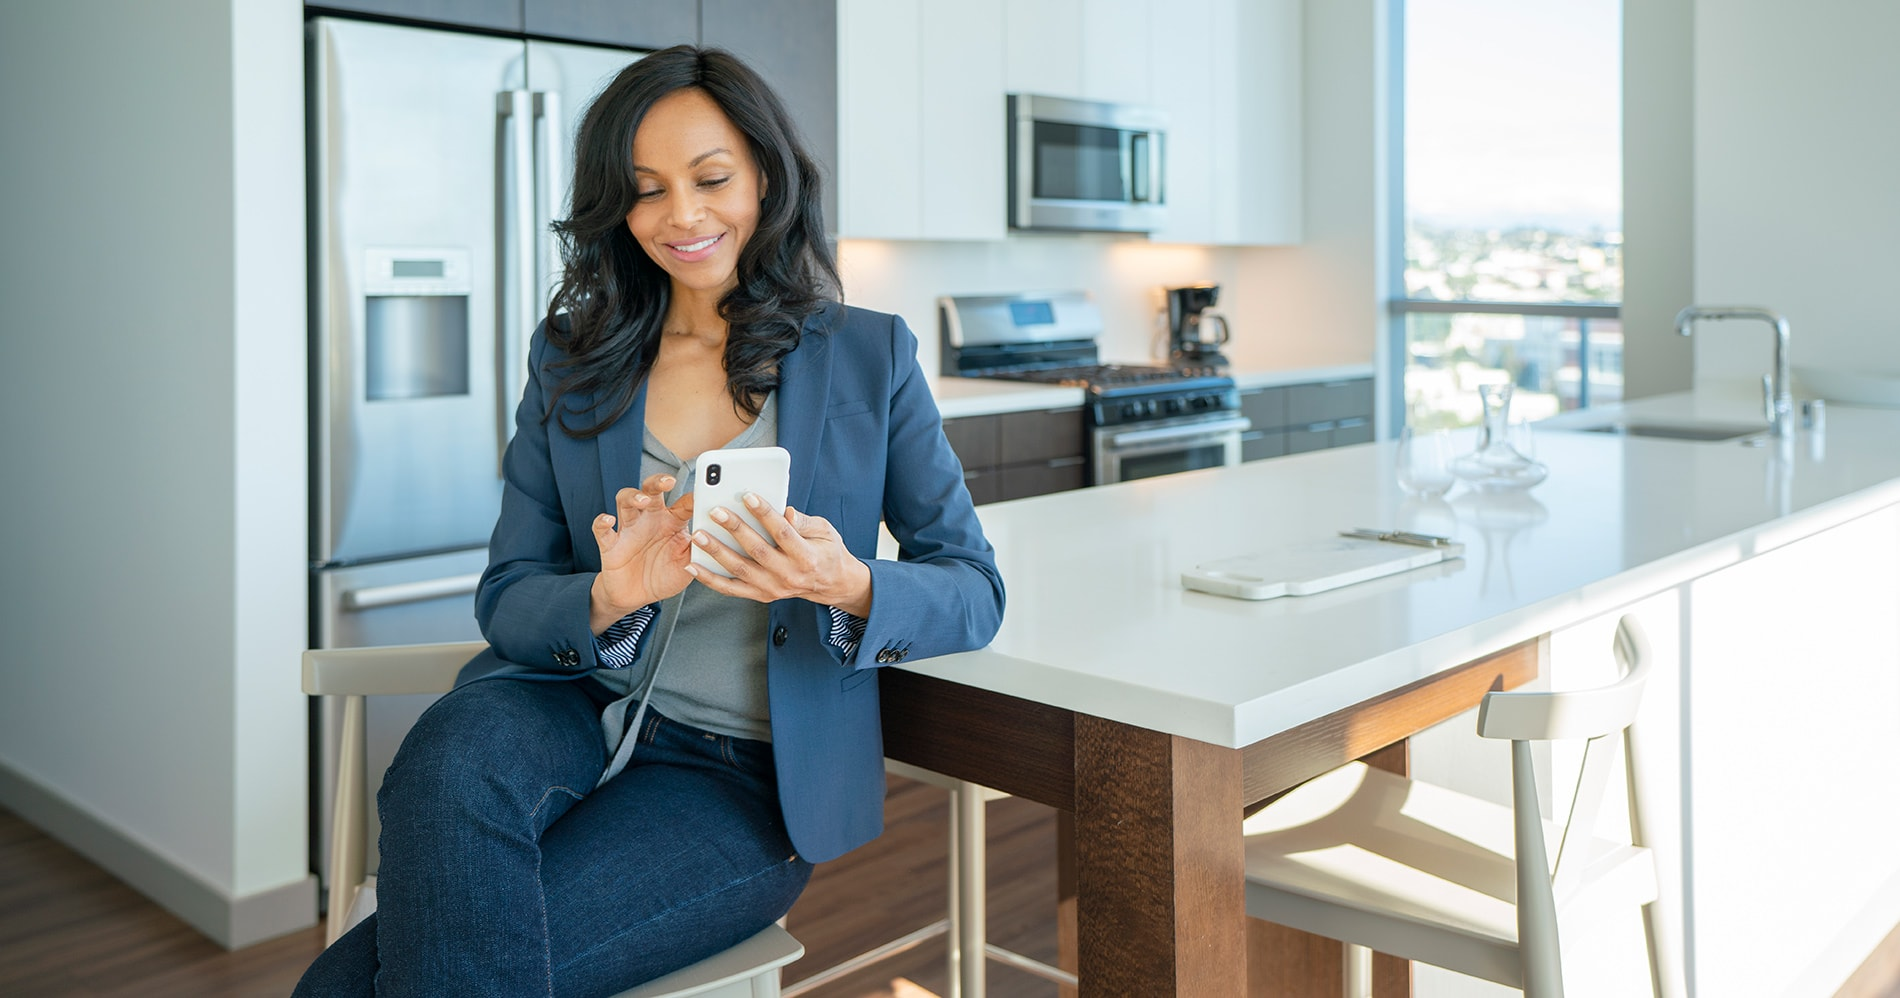 Smart Home Woman in Kitchen